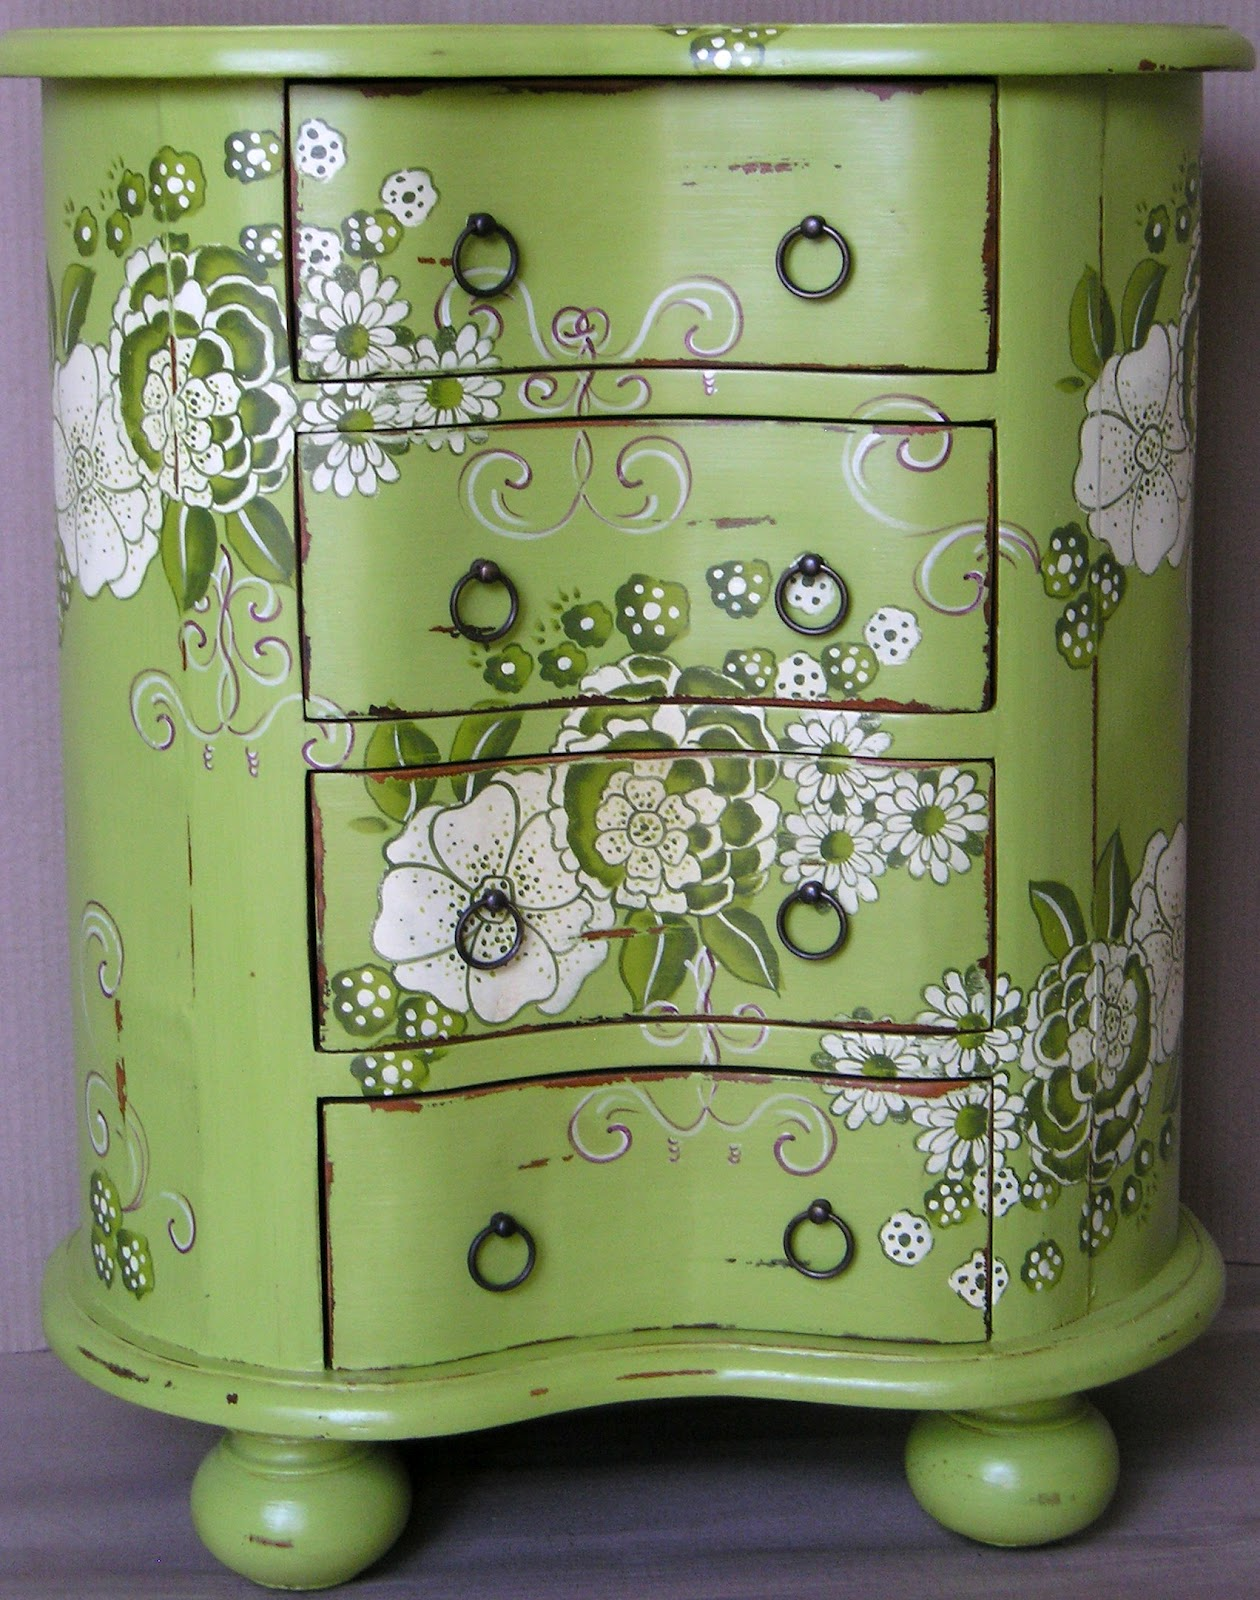 Lock stock and barrel furniture hand painted shabby chic for Hand painted furniture ideas